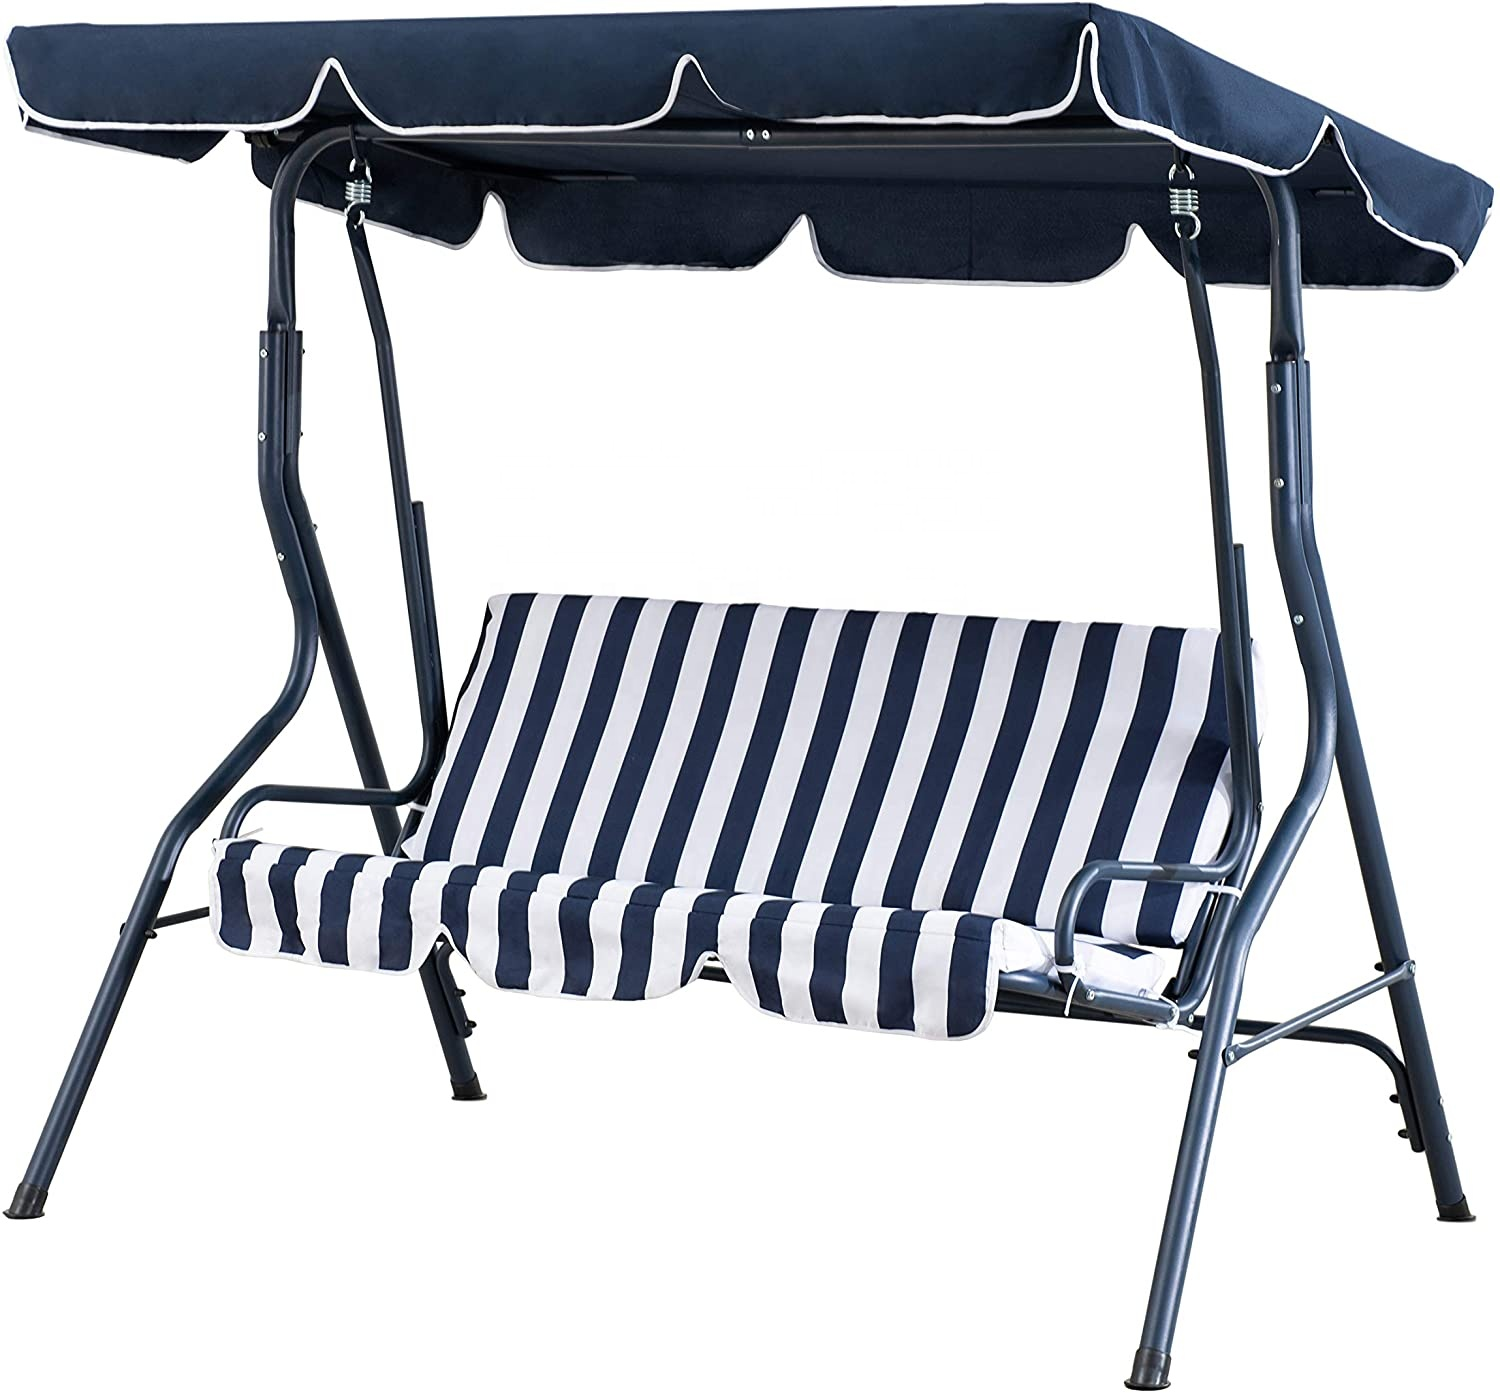 outdoor 2 seat striped patio swing with canopy buy cushioned patio swing chair swing set outdoor swing bench product on alibaba com